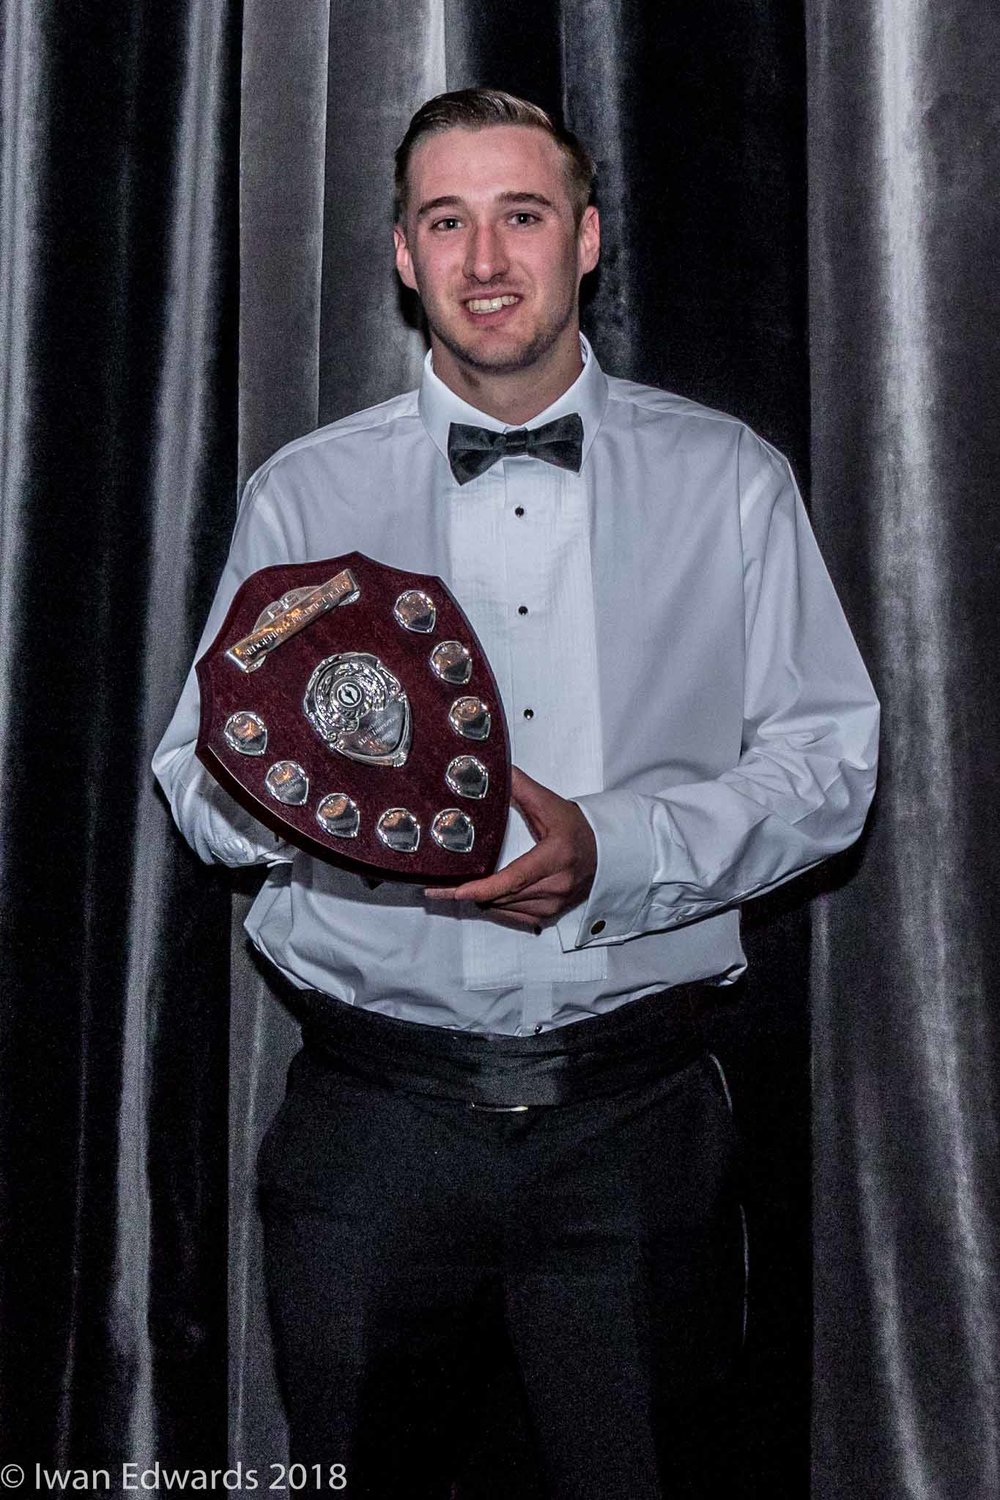 Saxons' Young Player of the Year   Mike Jackaman